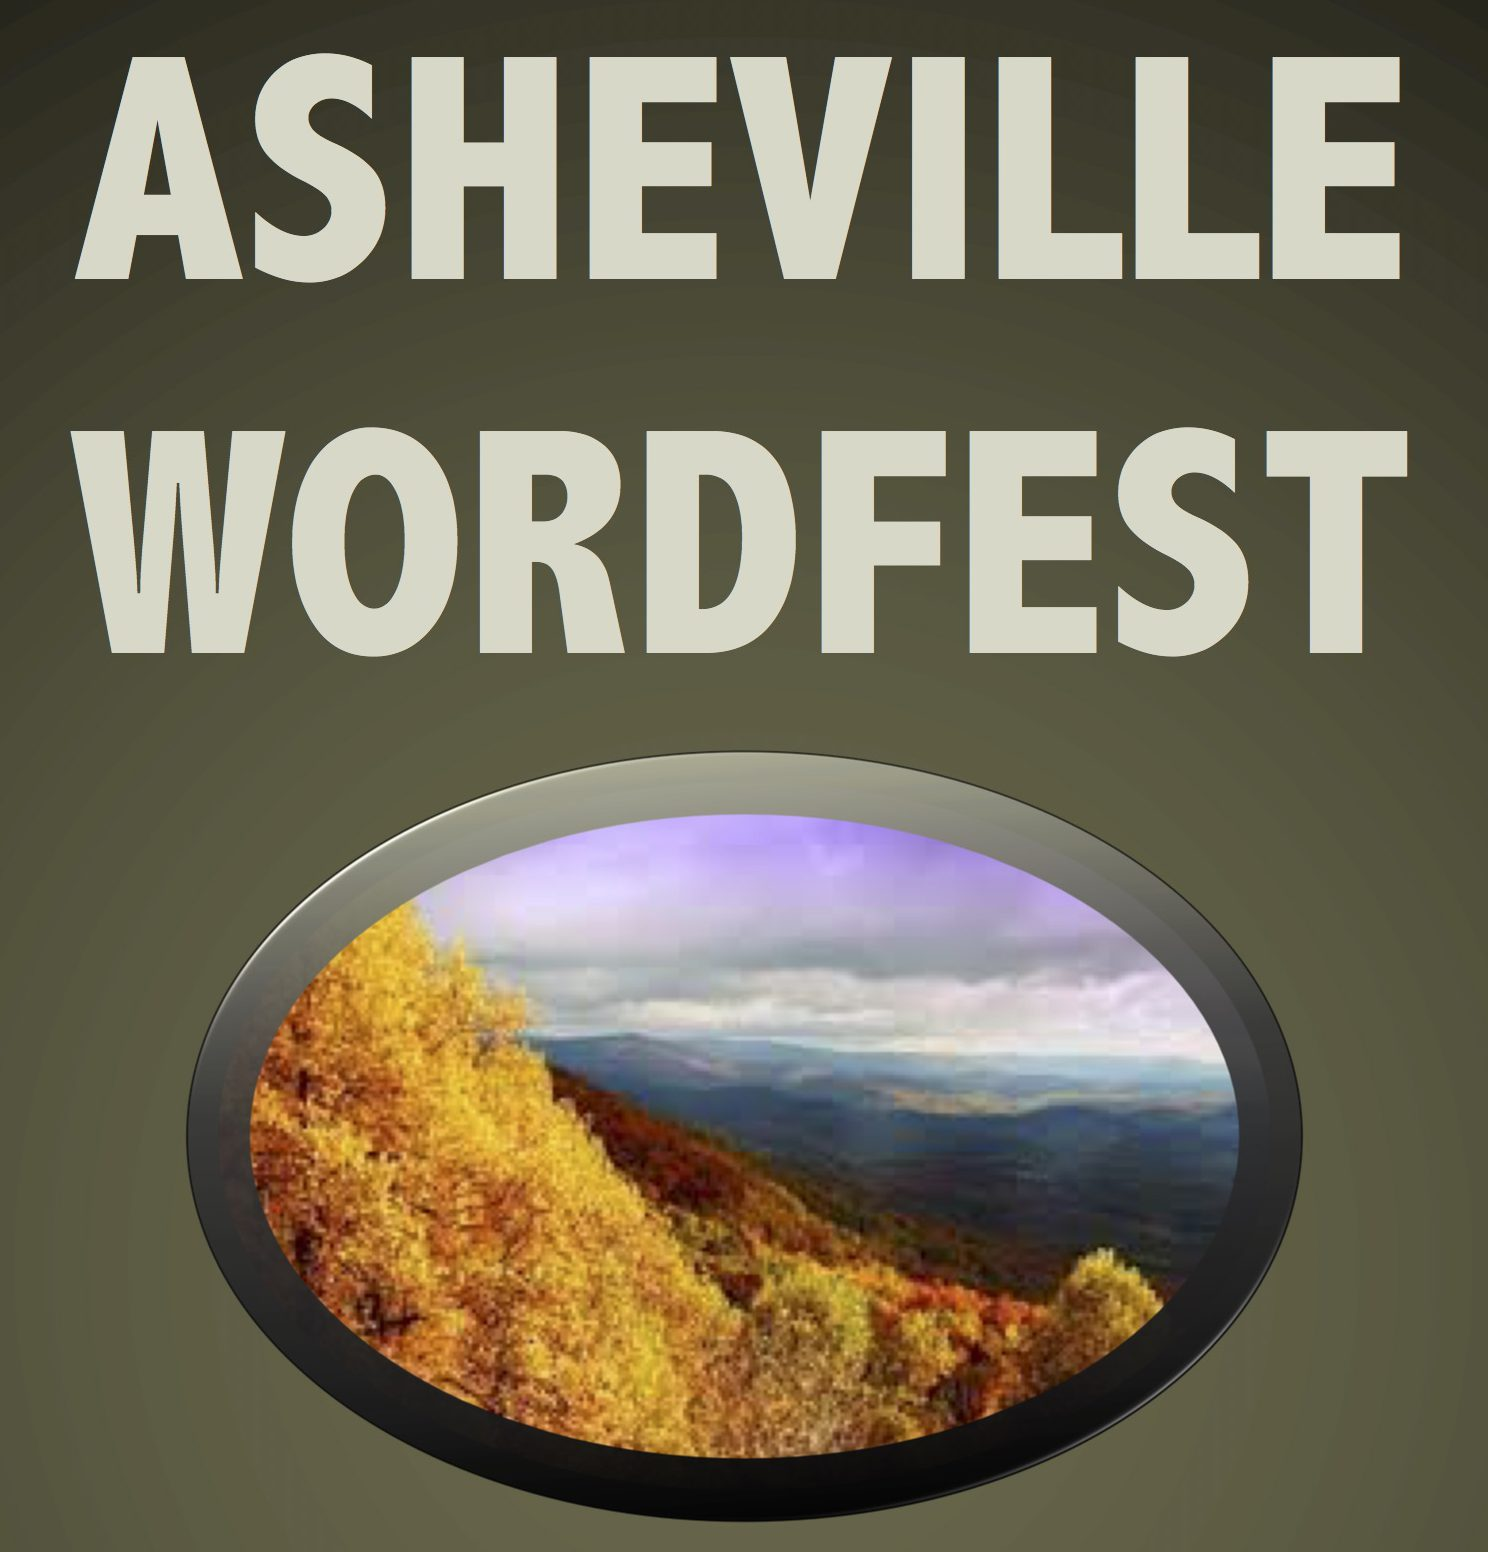 Asheville Wordfest